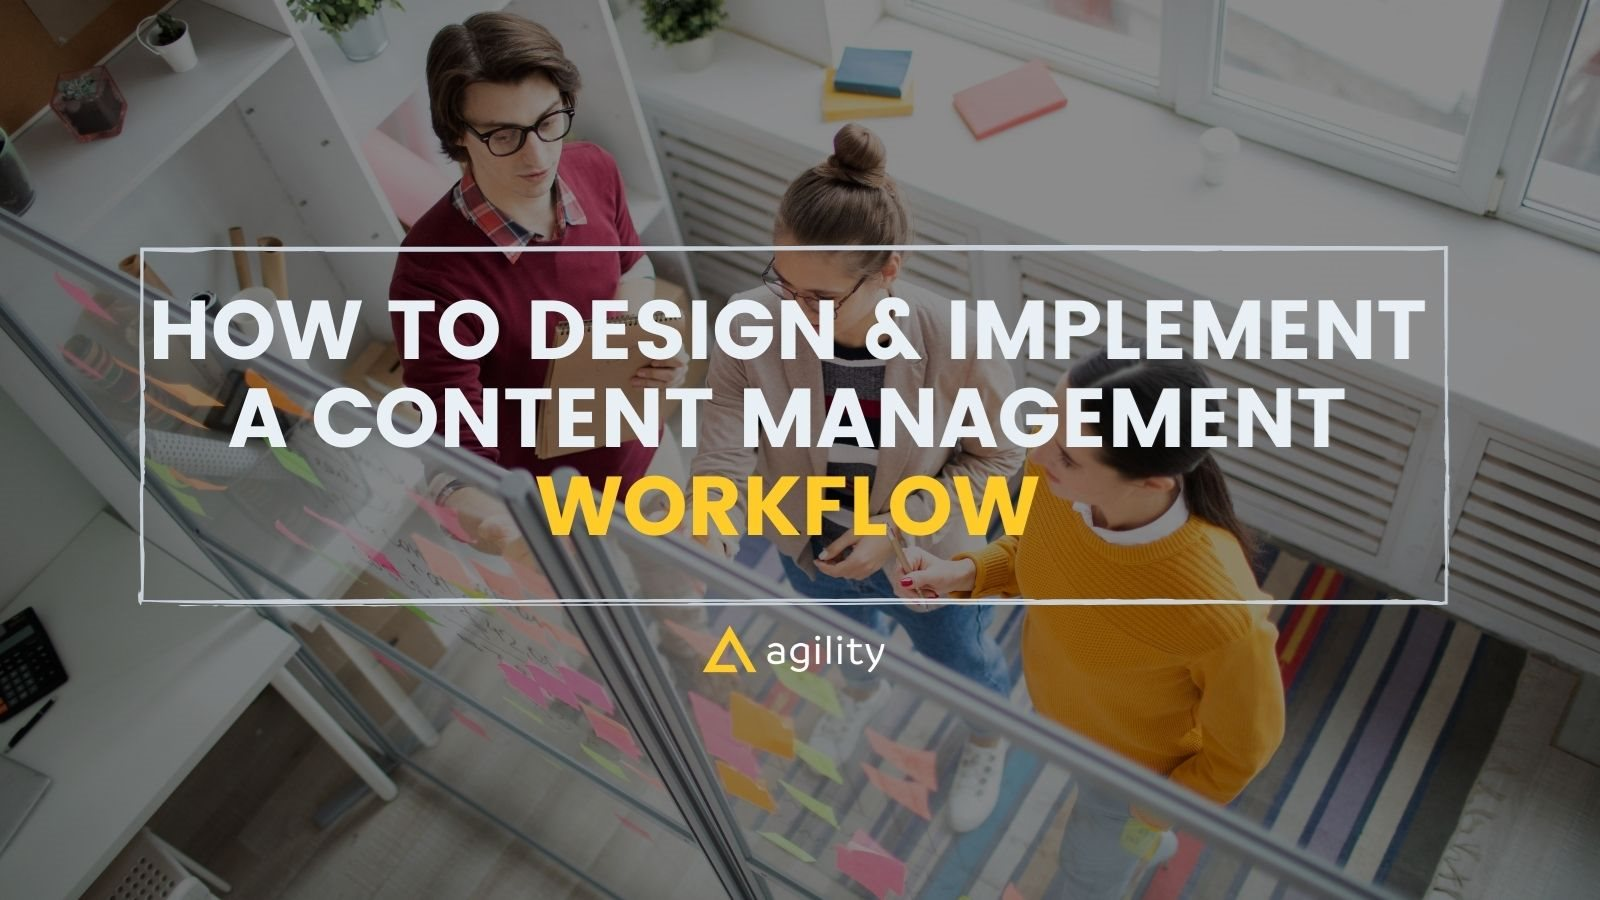 Implementing a Content Management Workflow on agilitycms.com